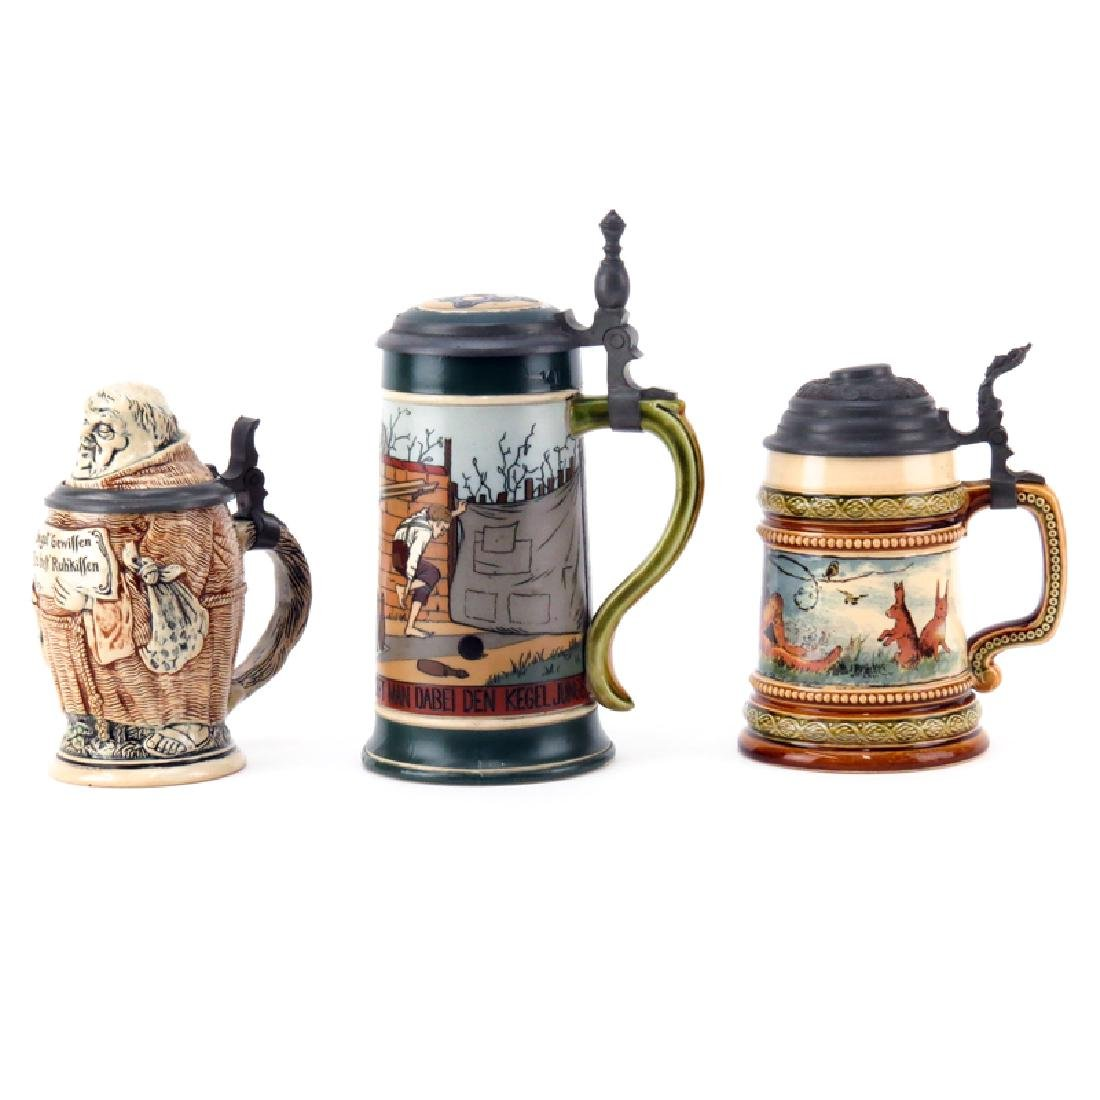 Three (3) Piece Lot of Vintage Steins. Includes 2 - 2